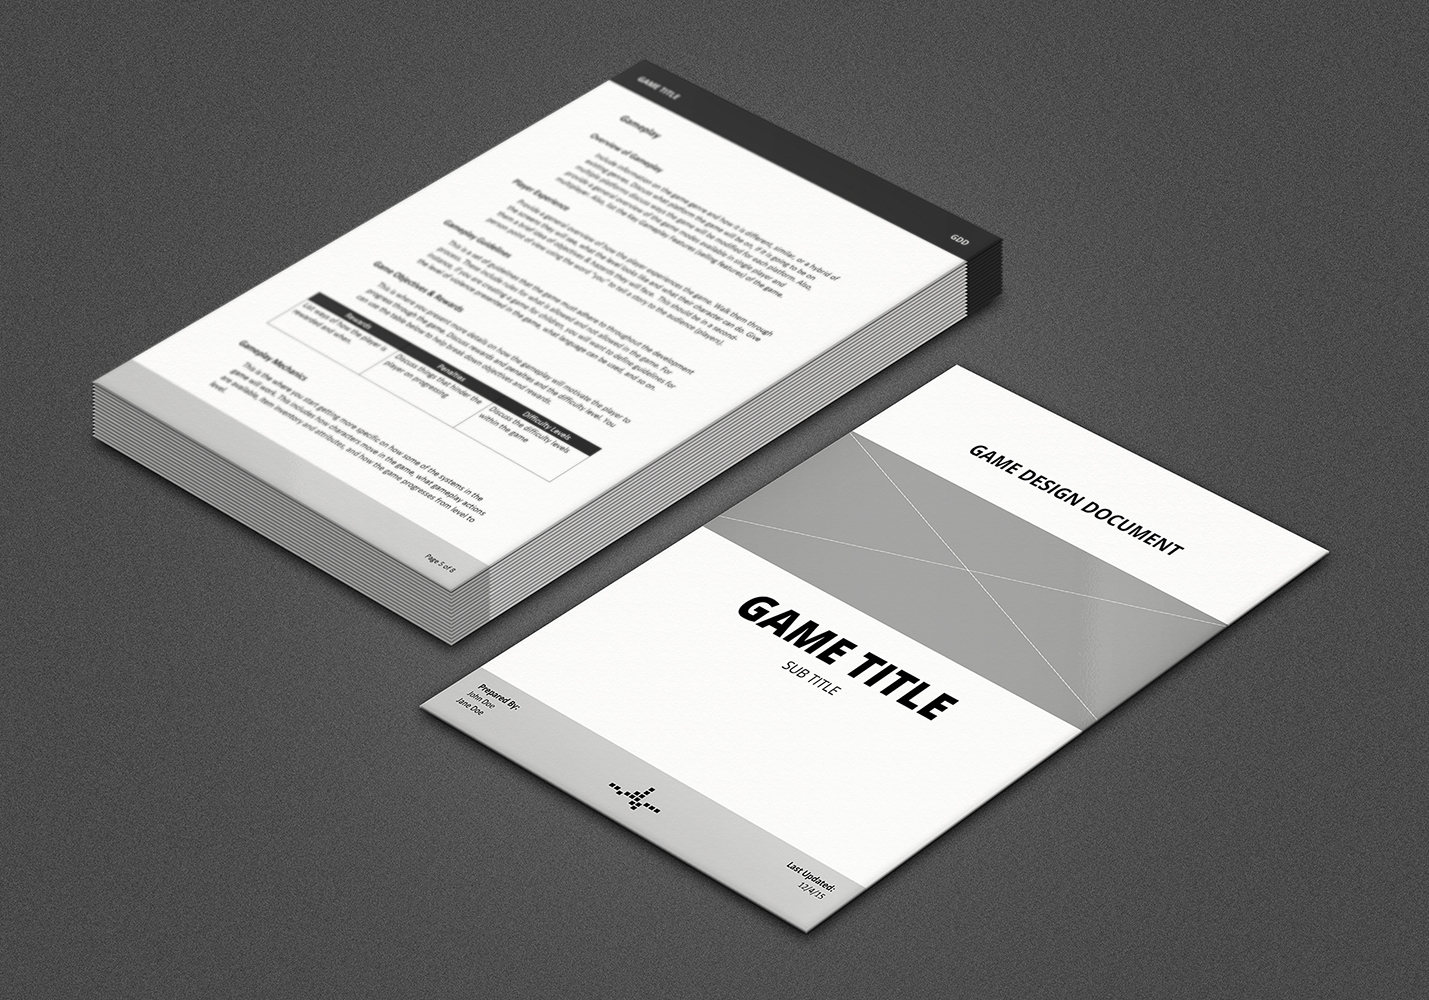 Game Design Document GDD Template By Vitalzigns - Game design document download